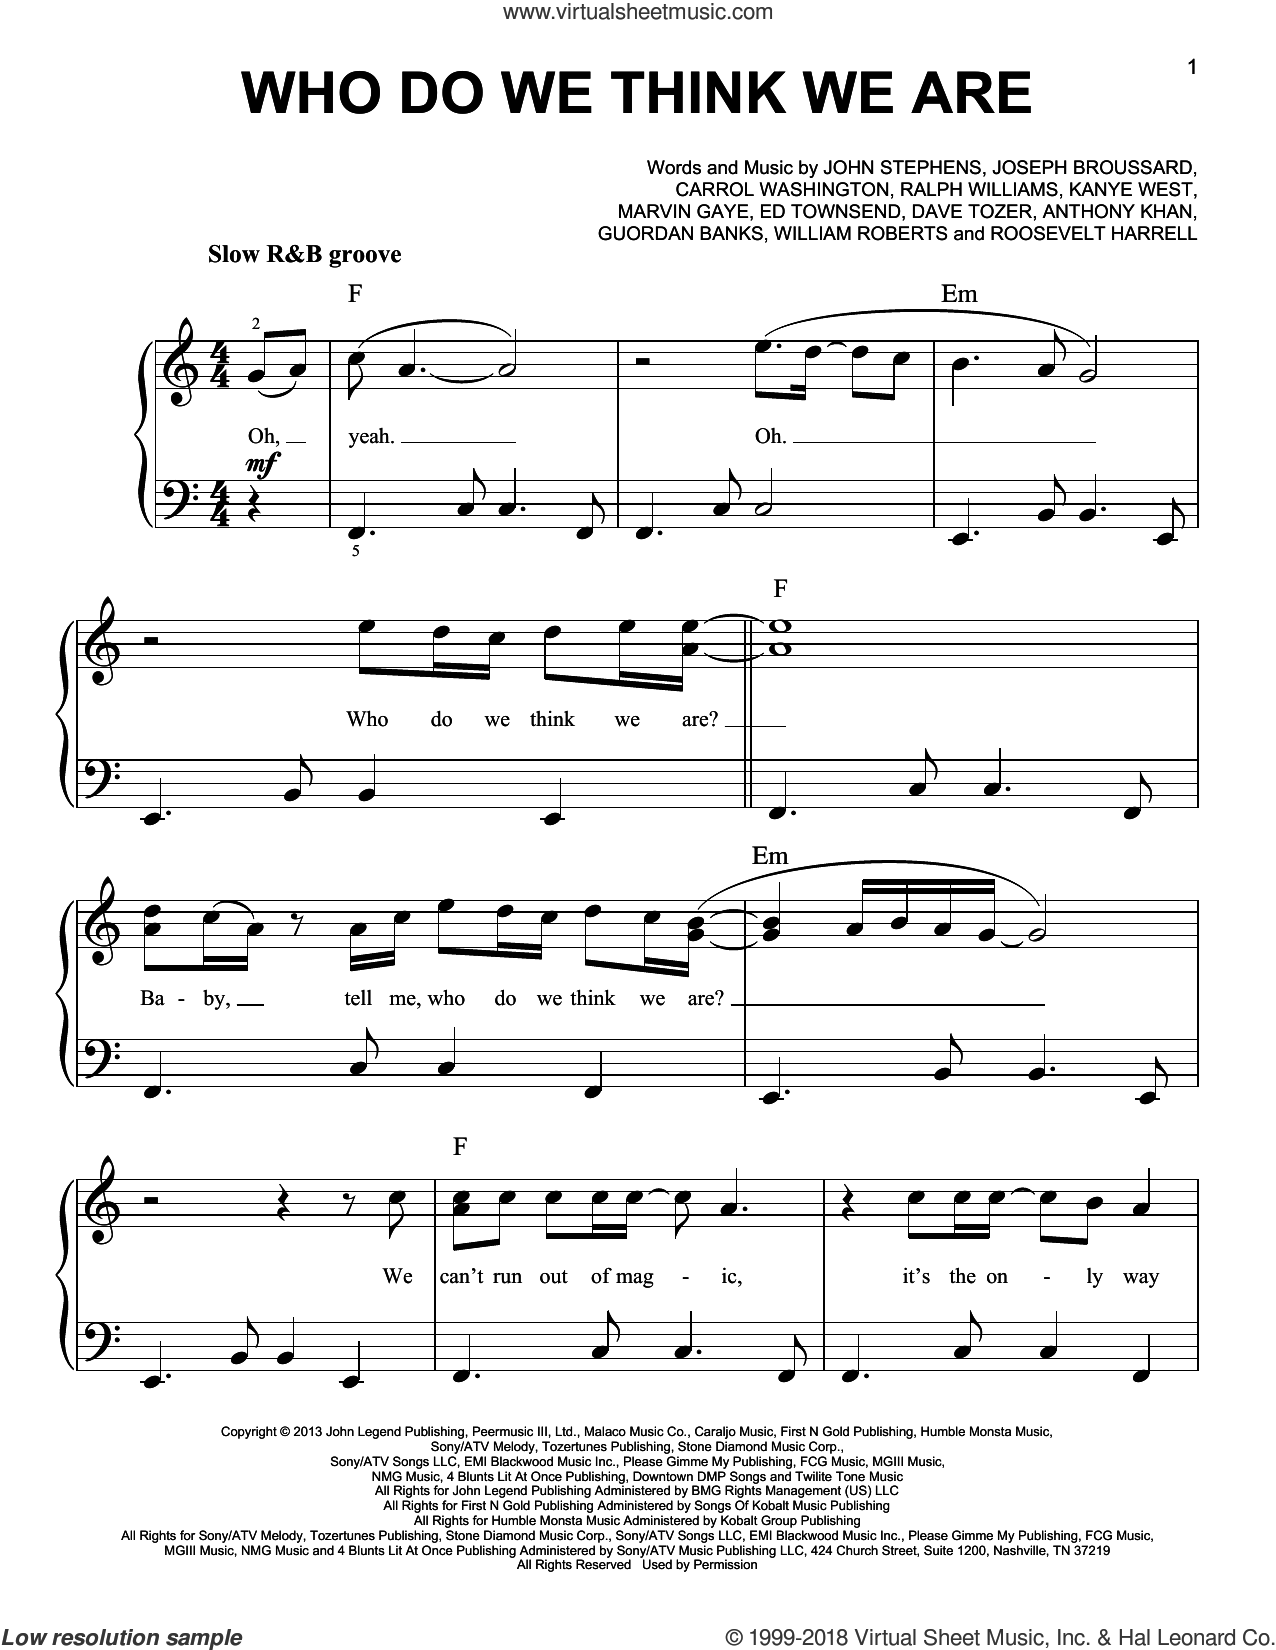 Who Do We Think We Are sheet music for piano solo by John Legend, Anthony Khan, Carrol Washington, Dave Tozer, Ed Townsend, Guordan Banks, John Stephens, Joseph Broussard, Kanye West, Marvin Gaye, Ralph Vaughan Williams, Roosevelt Harrell and William Roberts, easy skill level